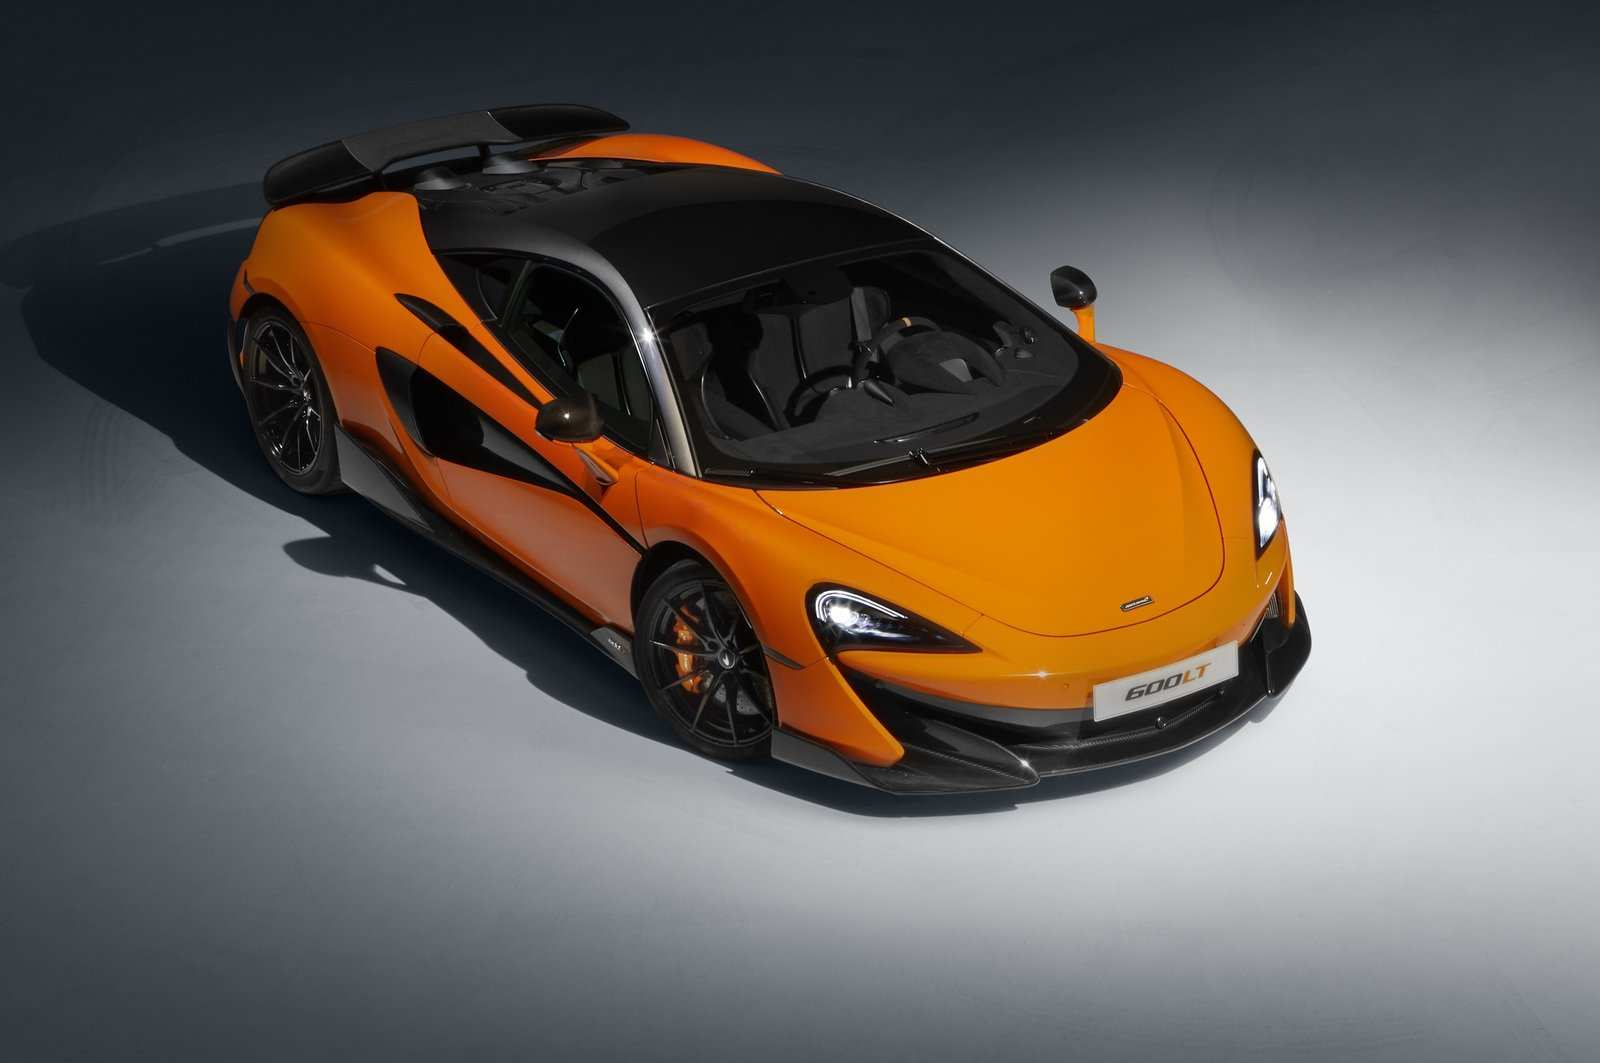 79 Concept of 2019 Mclaren Top Speed Overview by 2019 Mclaren Top Speed